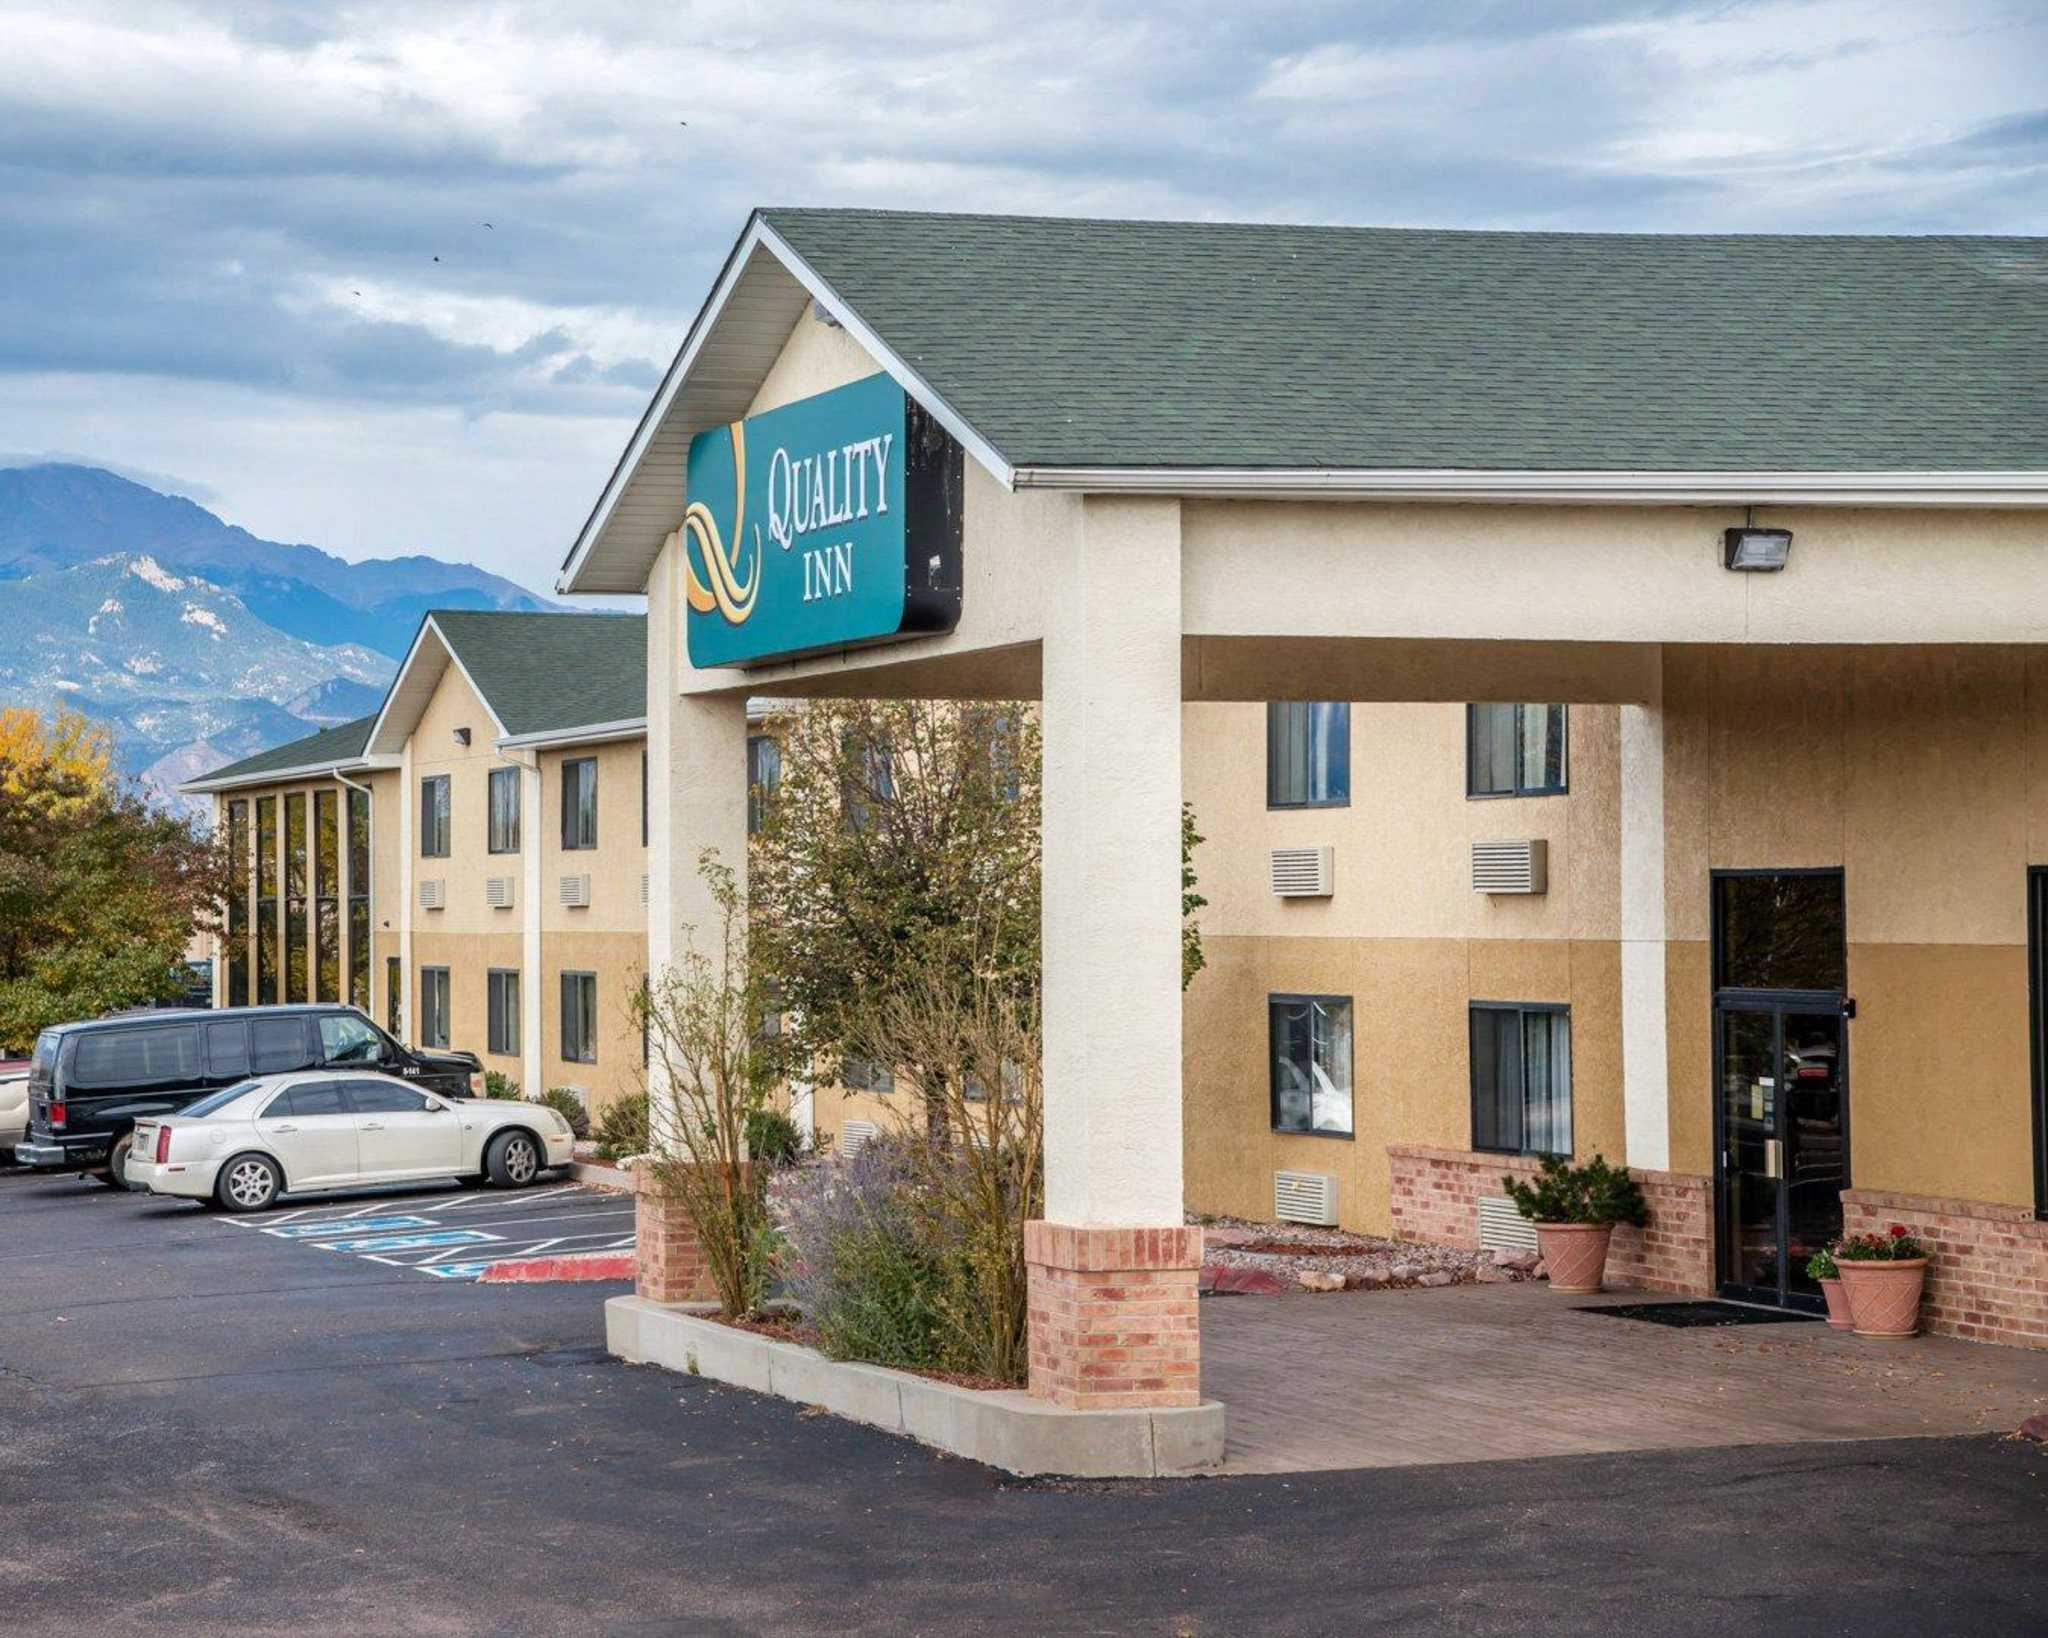 Quality Inn Colorado Springs Airport image 2